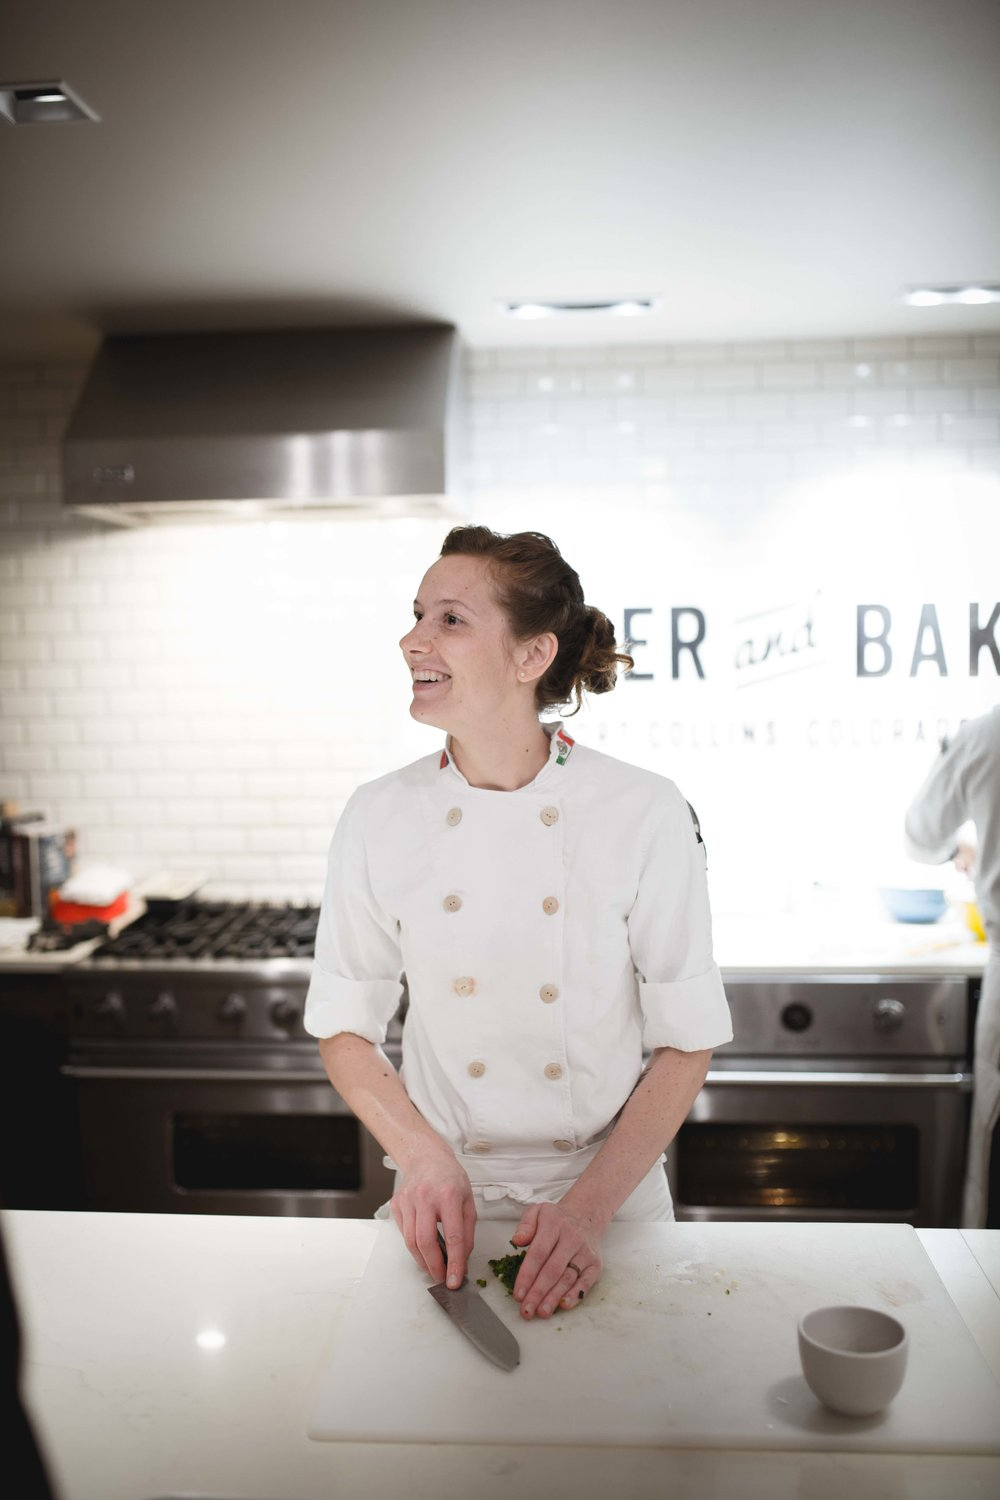 GingerandBaker-JuliyJuan-CookingClass-Feb28-19.jpg